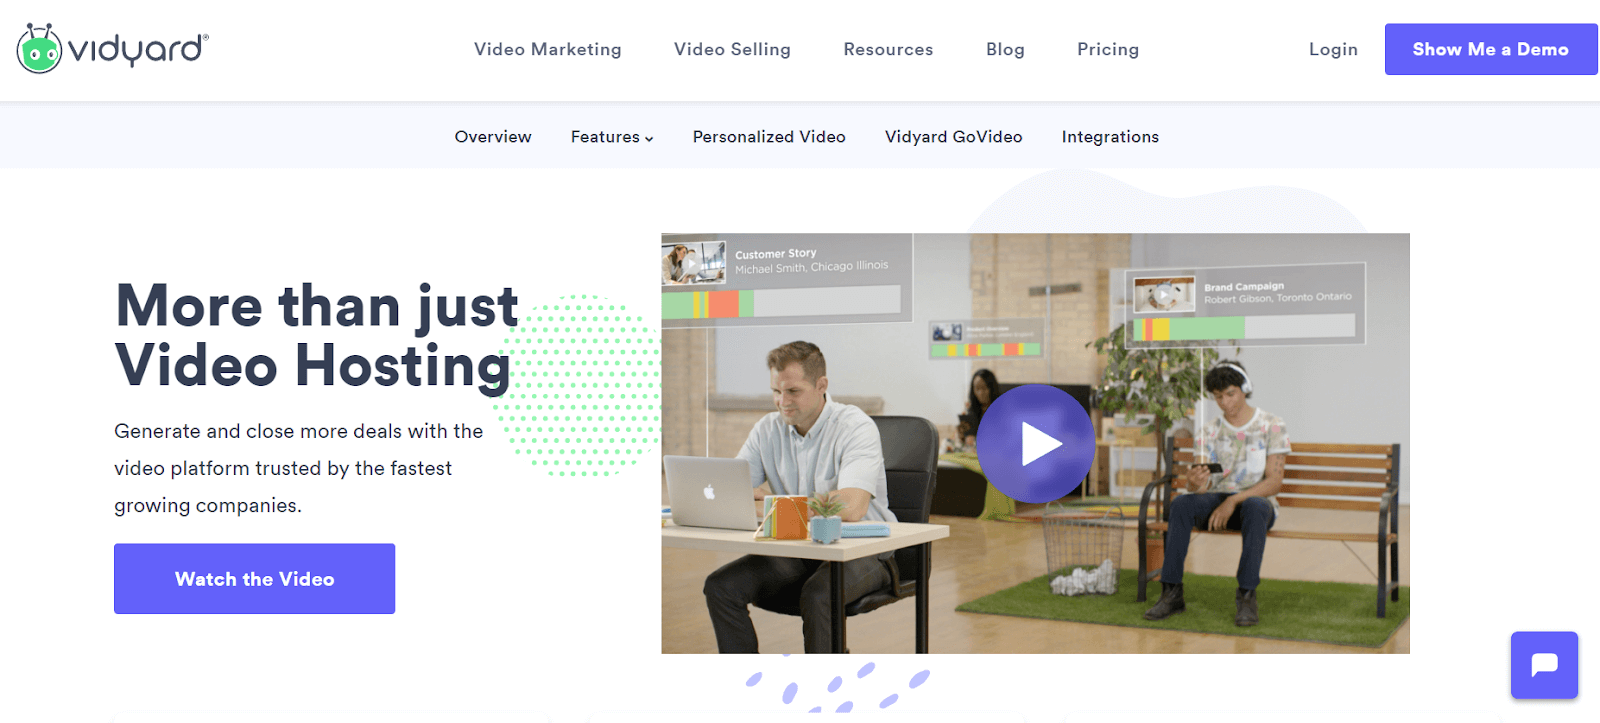 Vidyard Video Marketing Tool